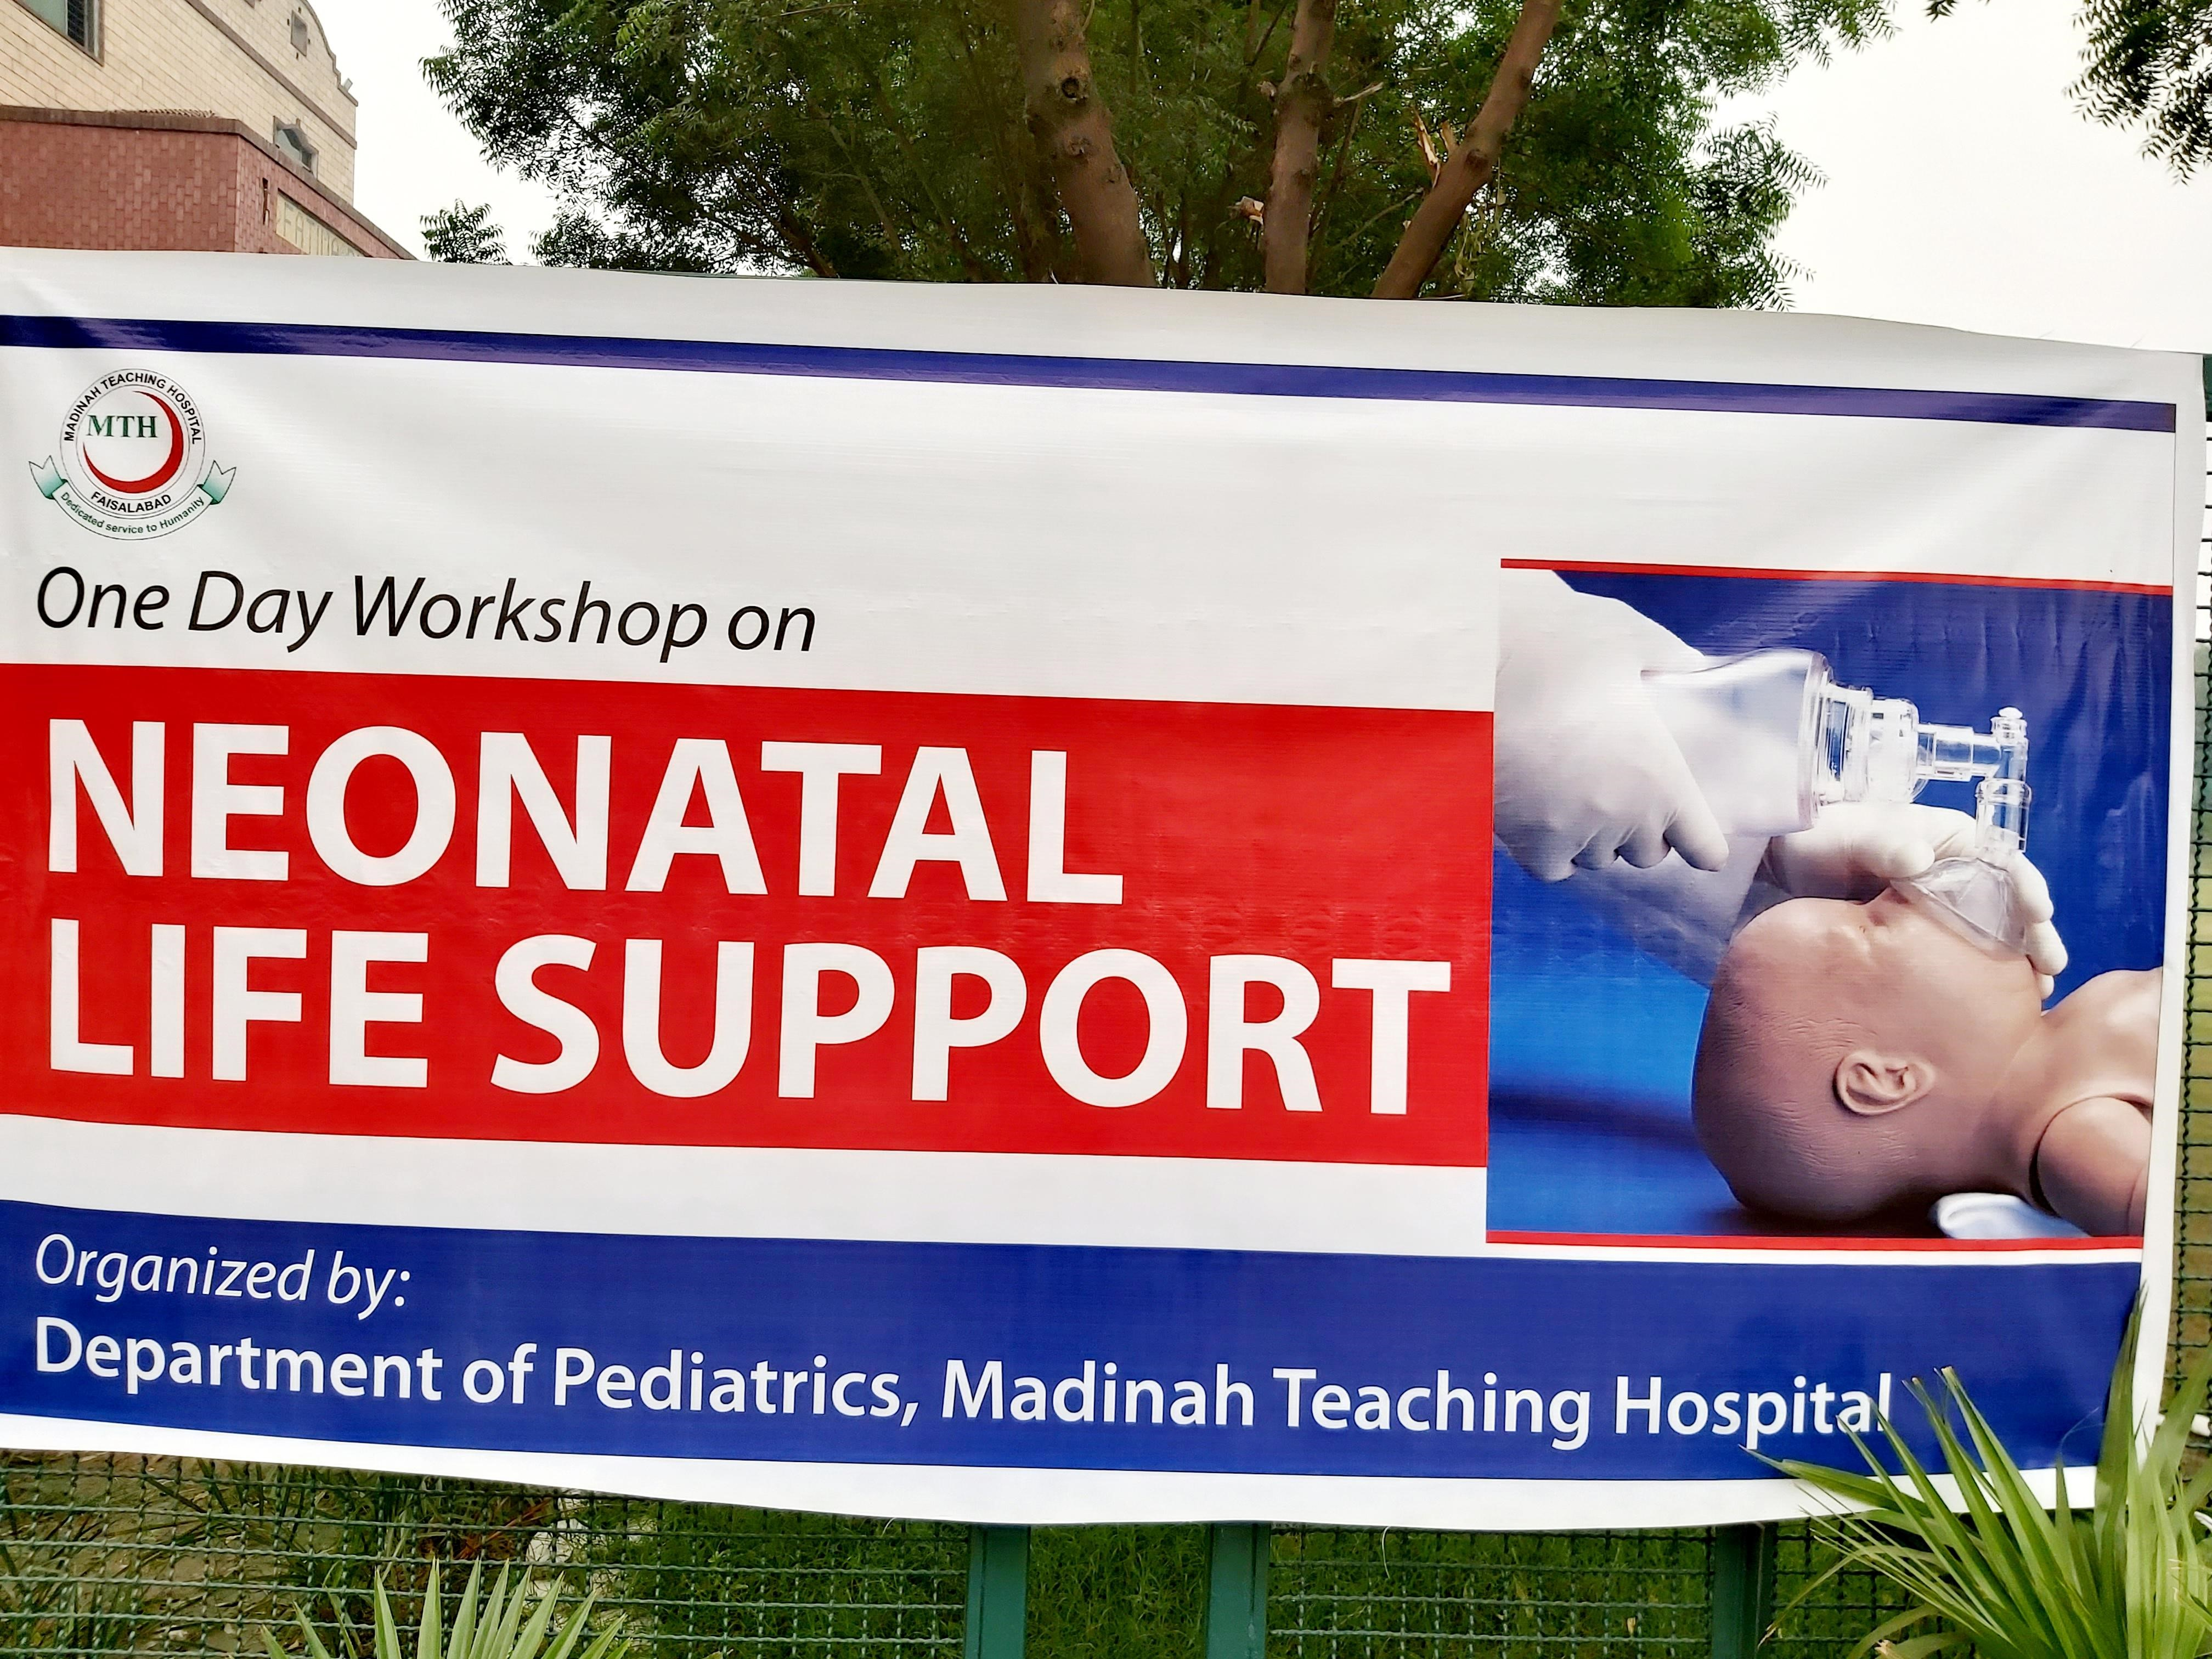 neonatal-life-support-workshop-in-mth